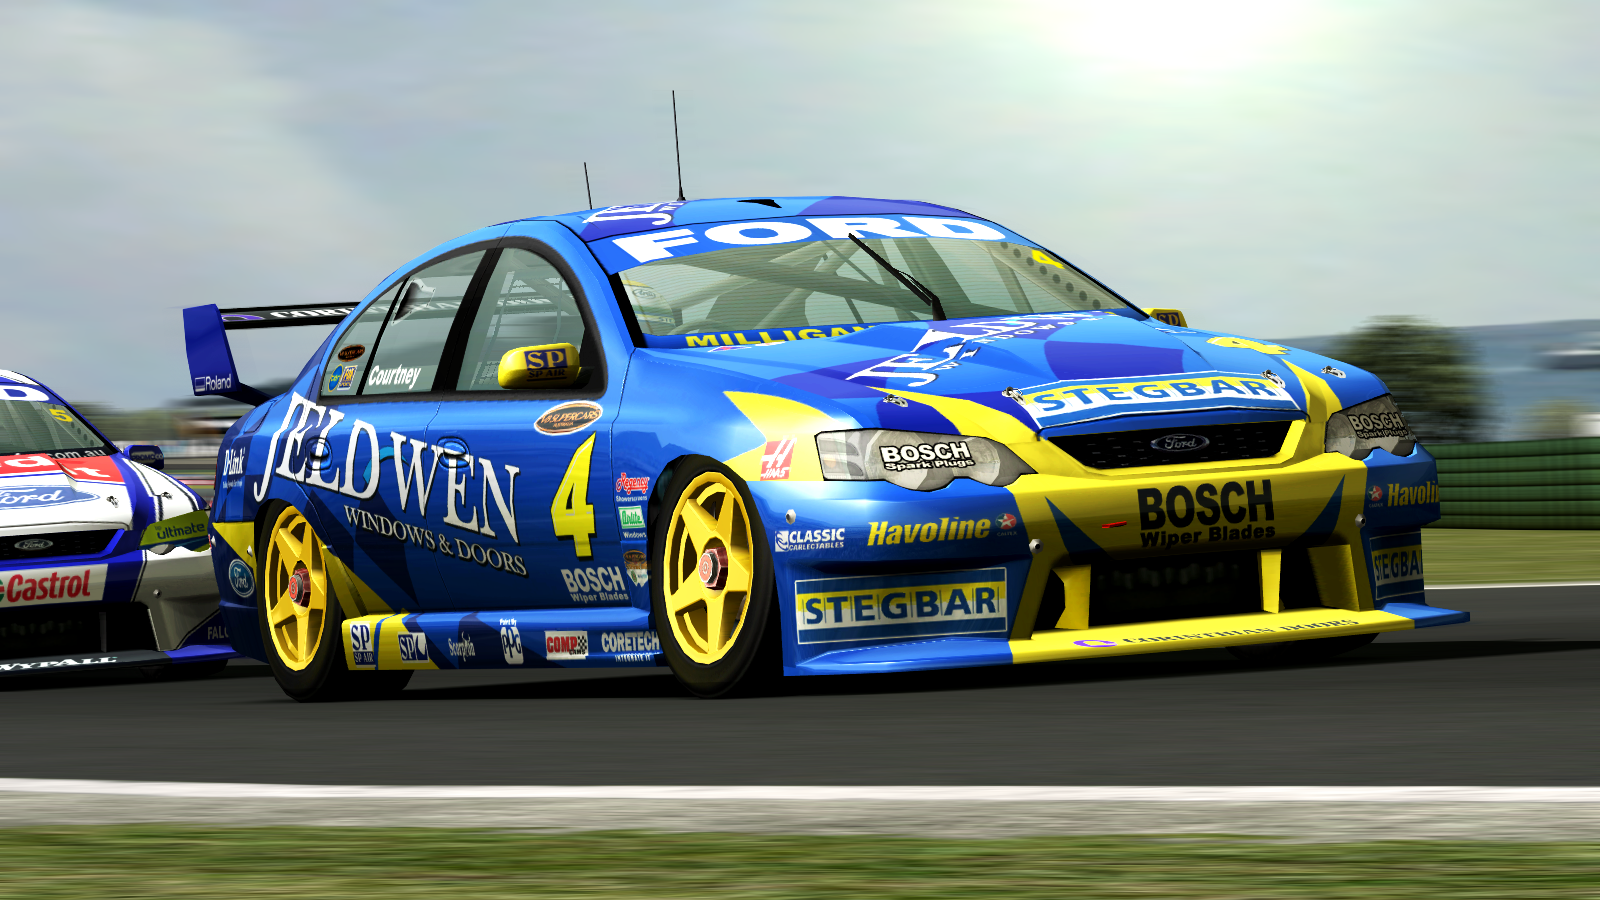 V8 Supercar Wallpapers 1600x900